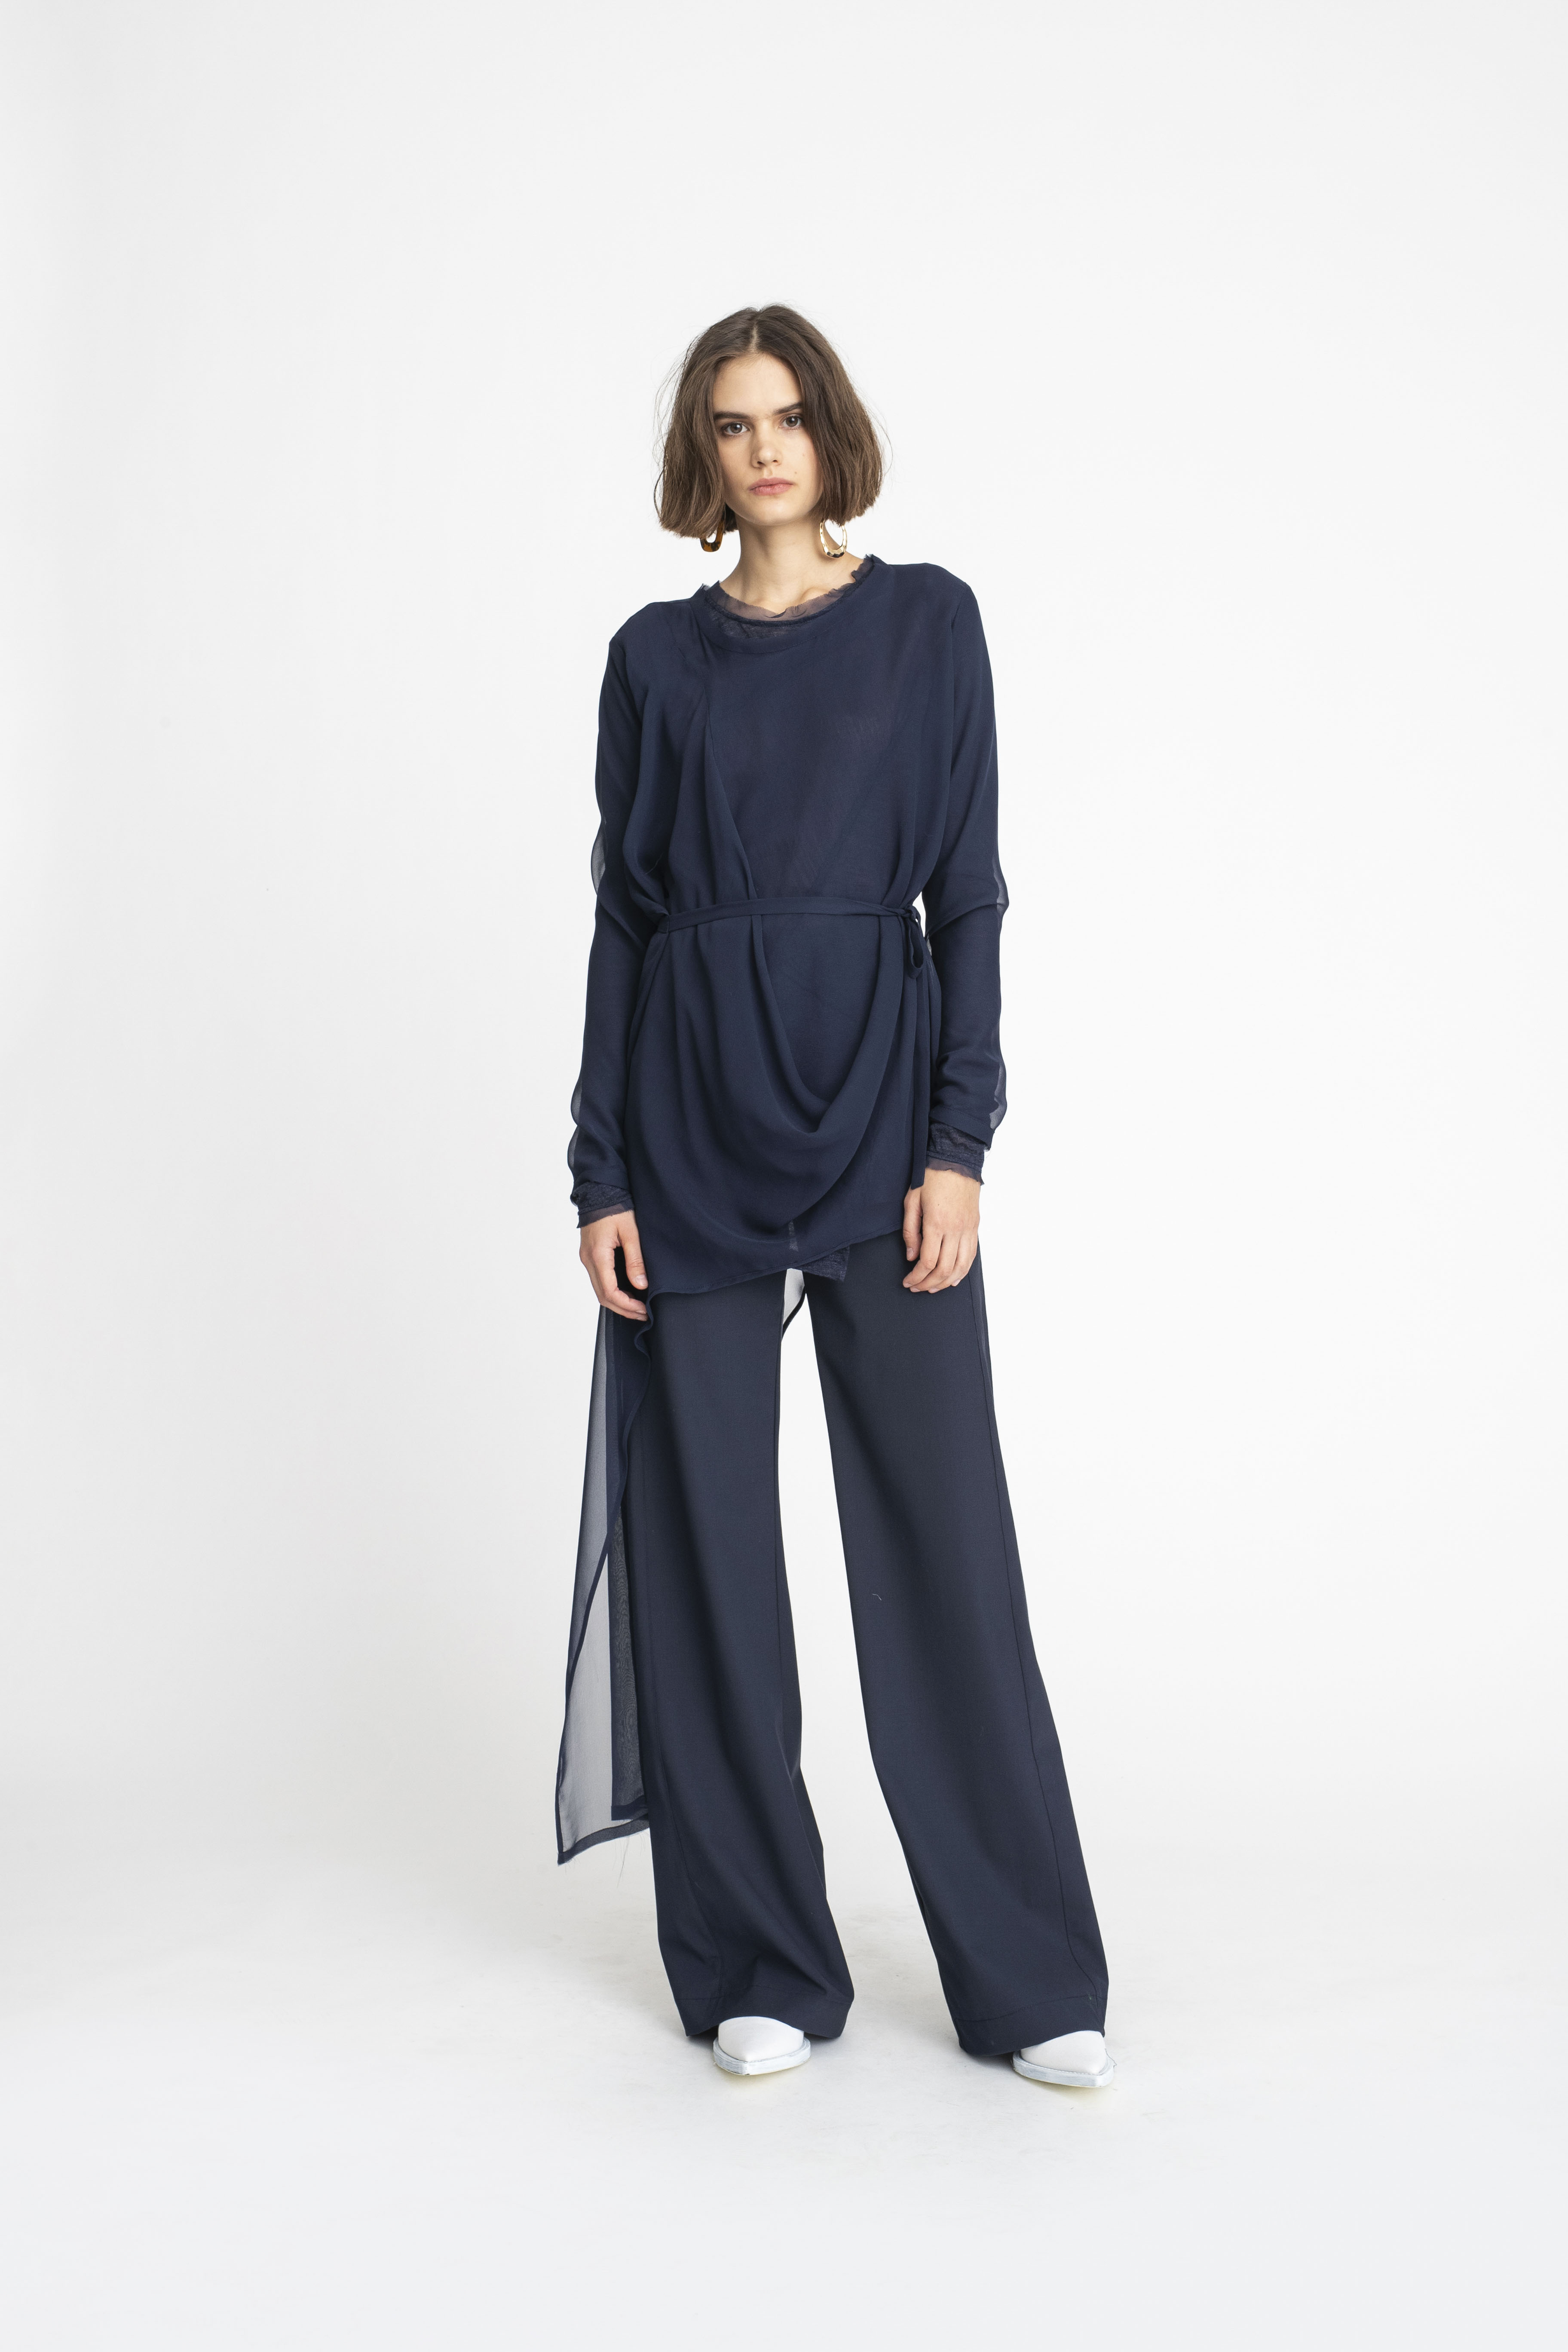 Stream-Tunic_mosaic-Tunic_Panelled-Joust-Pant_TaylorBoutique_AW19_L80_1877 2